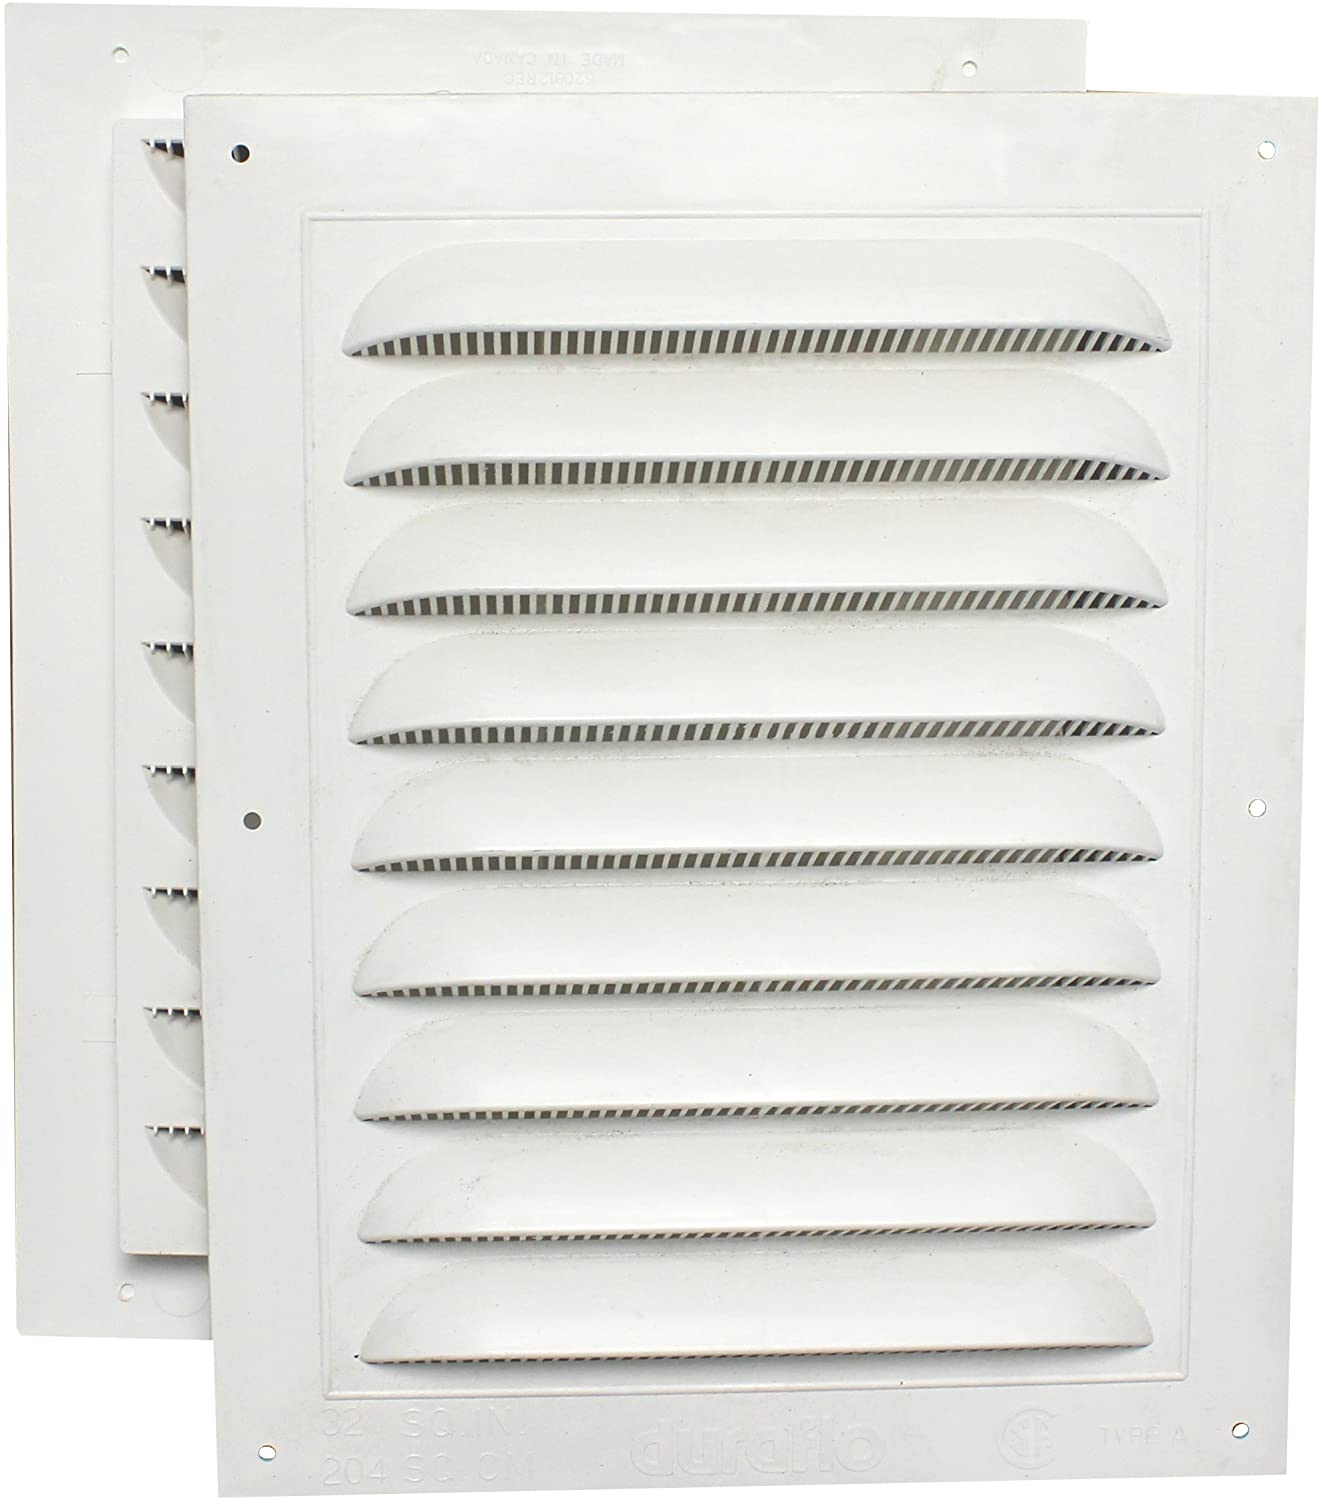 Duraflo 620812COMB Combined Gable Vent, 8-Inch X 12-Inch